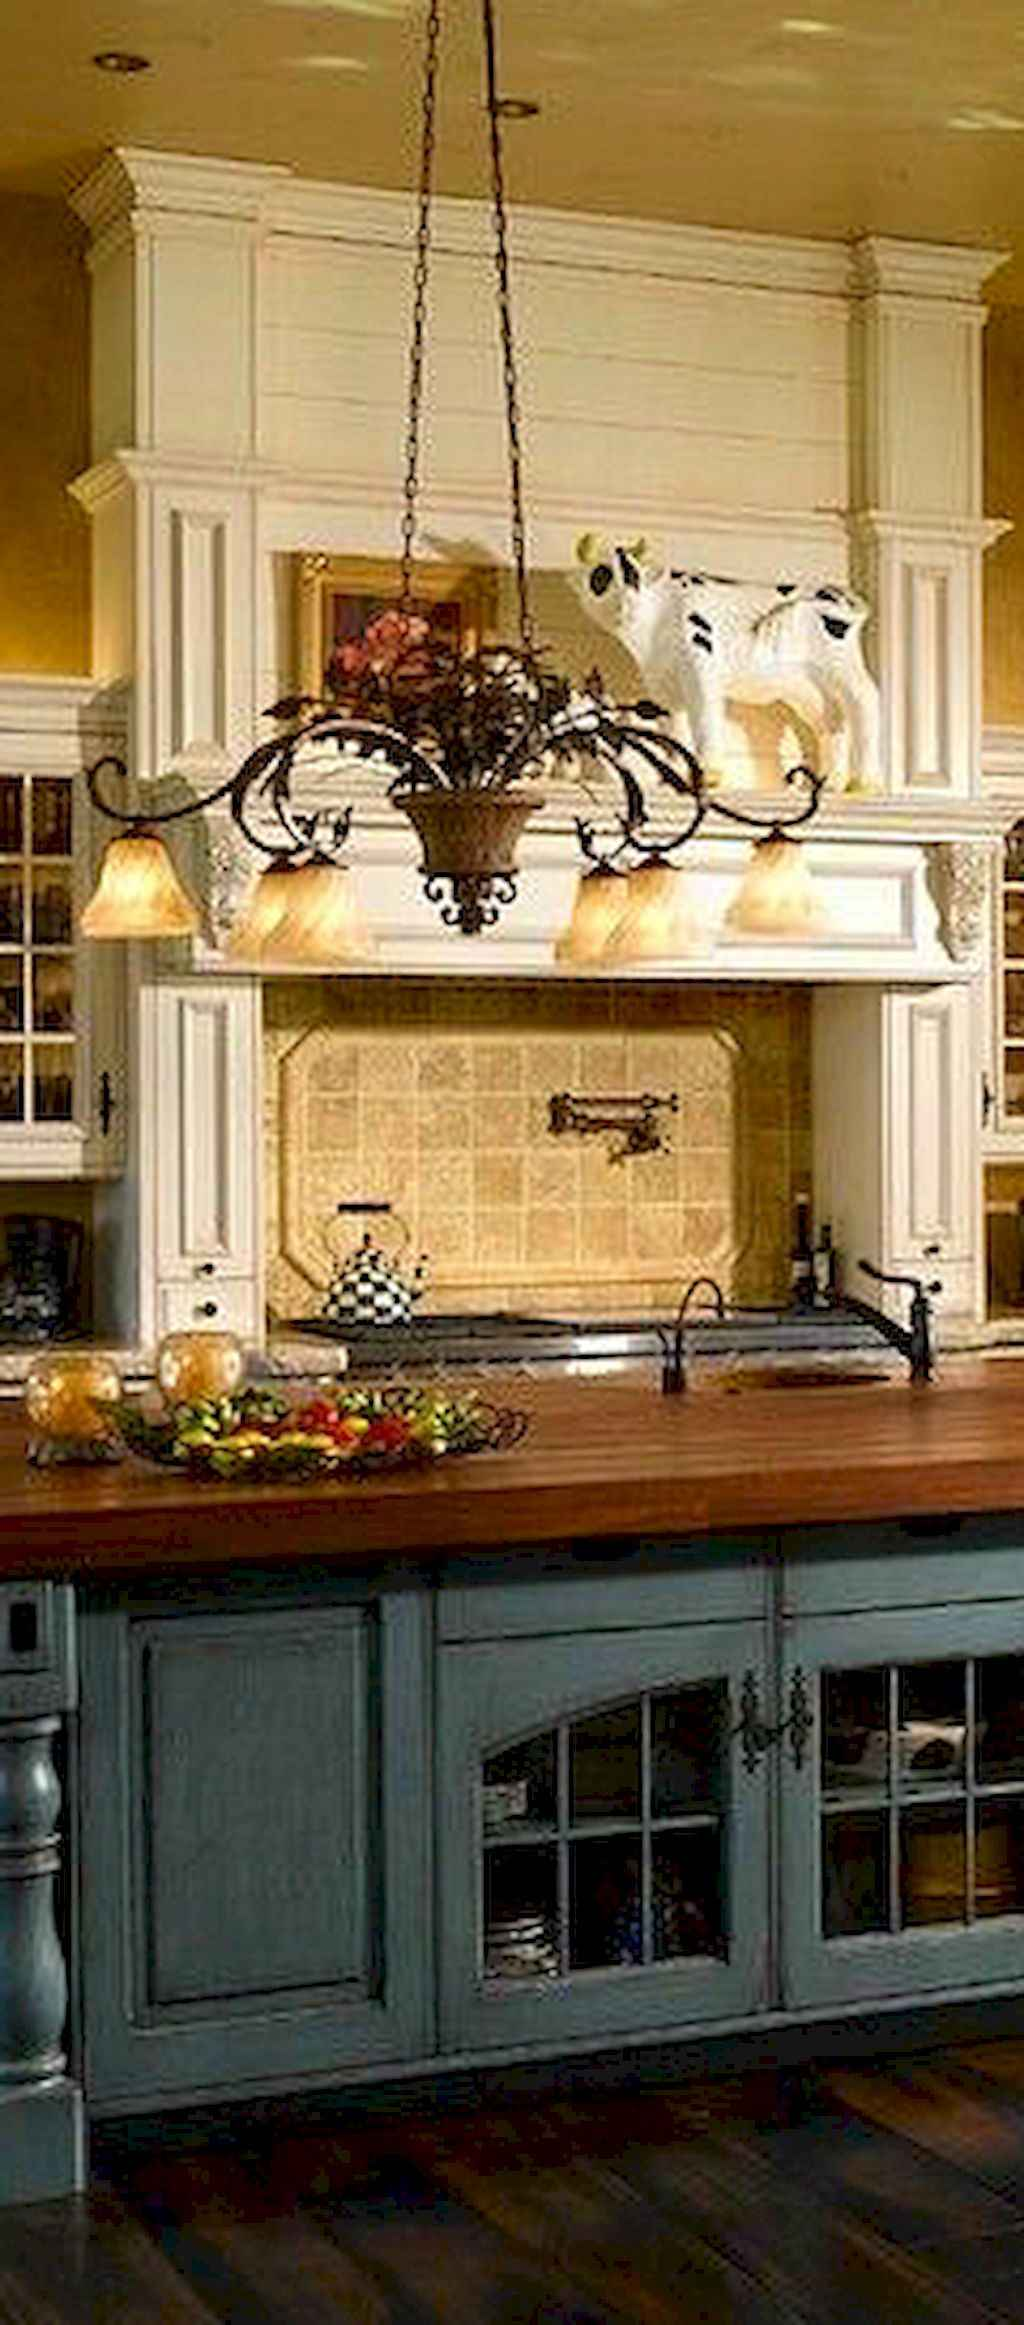 Incredible french country kitchen design ideas (11)